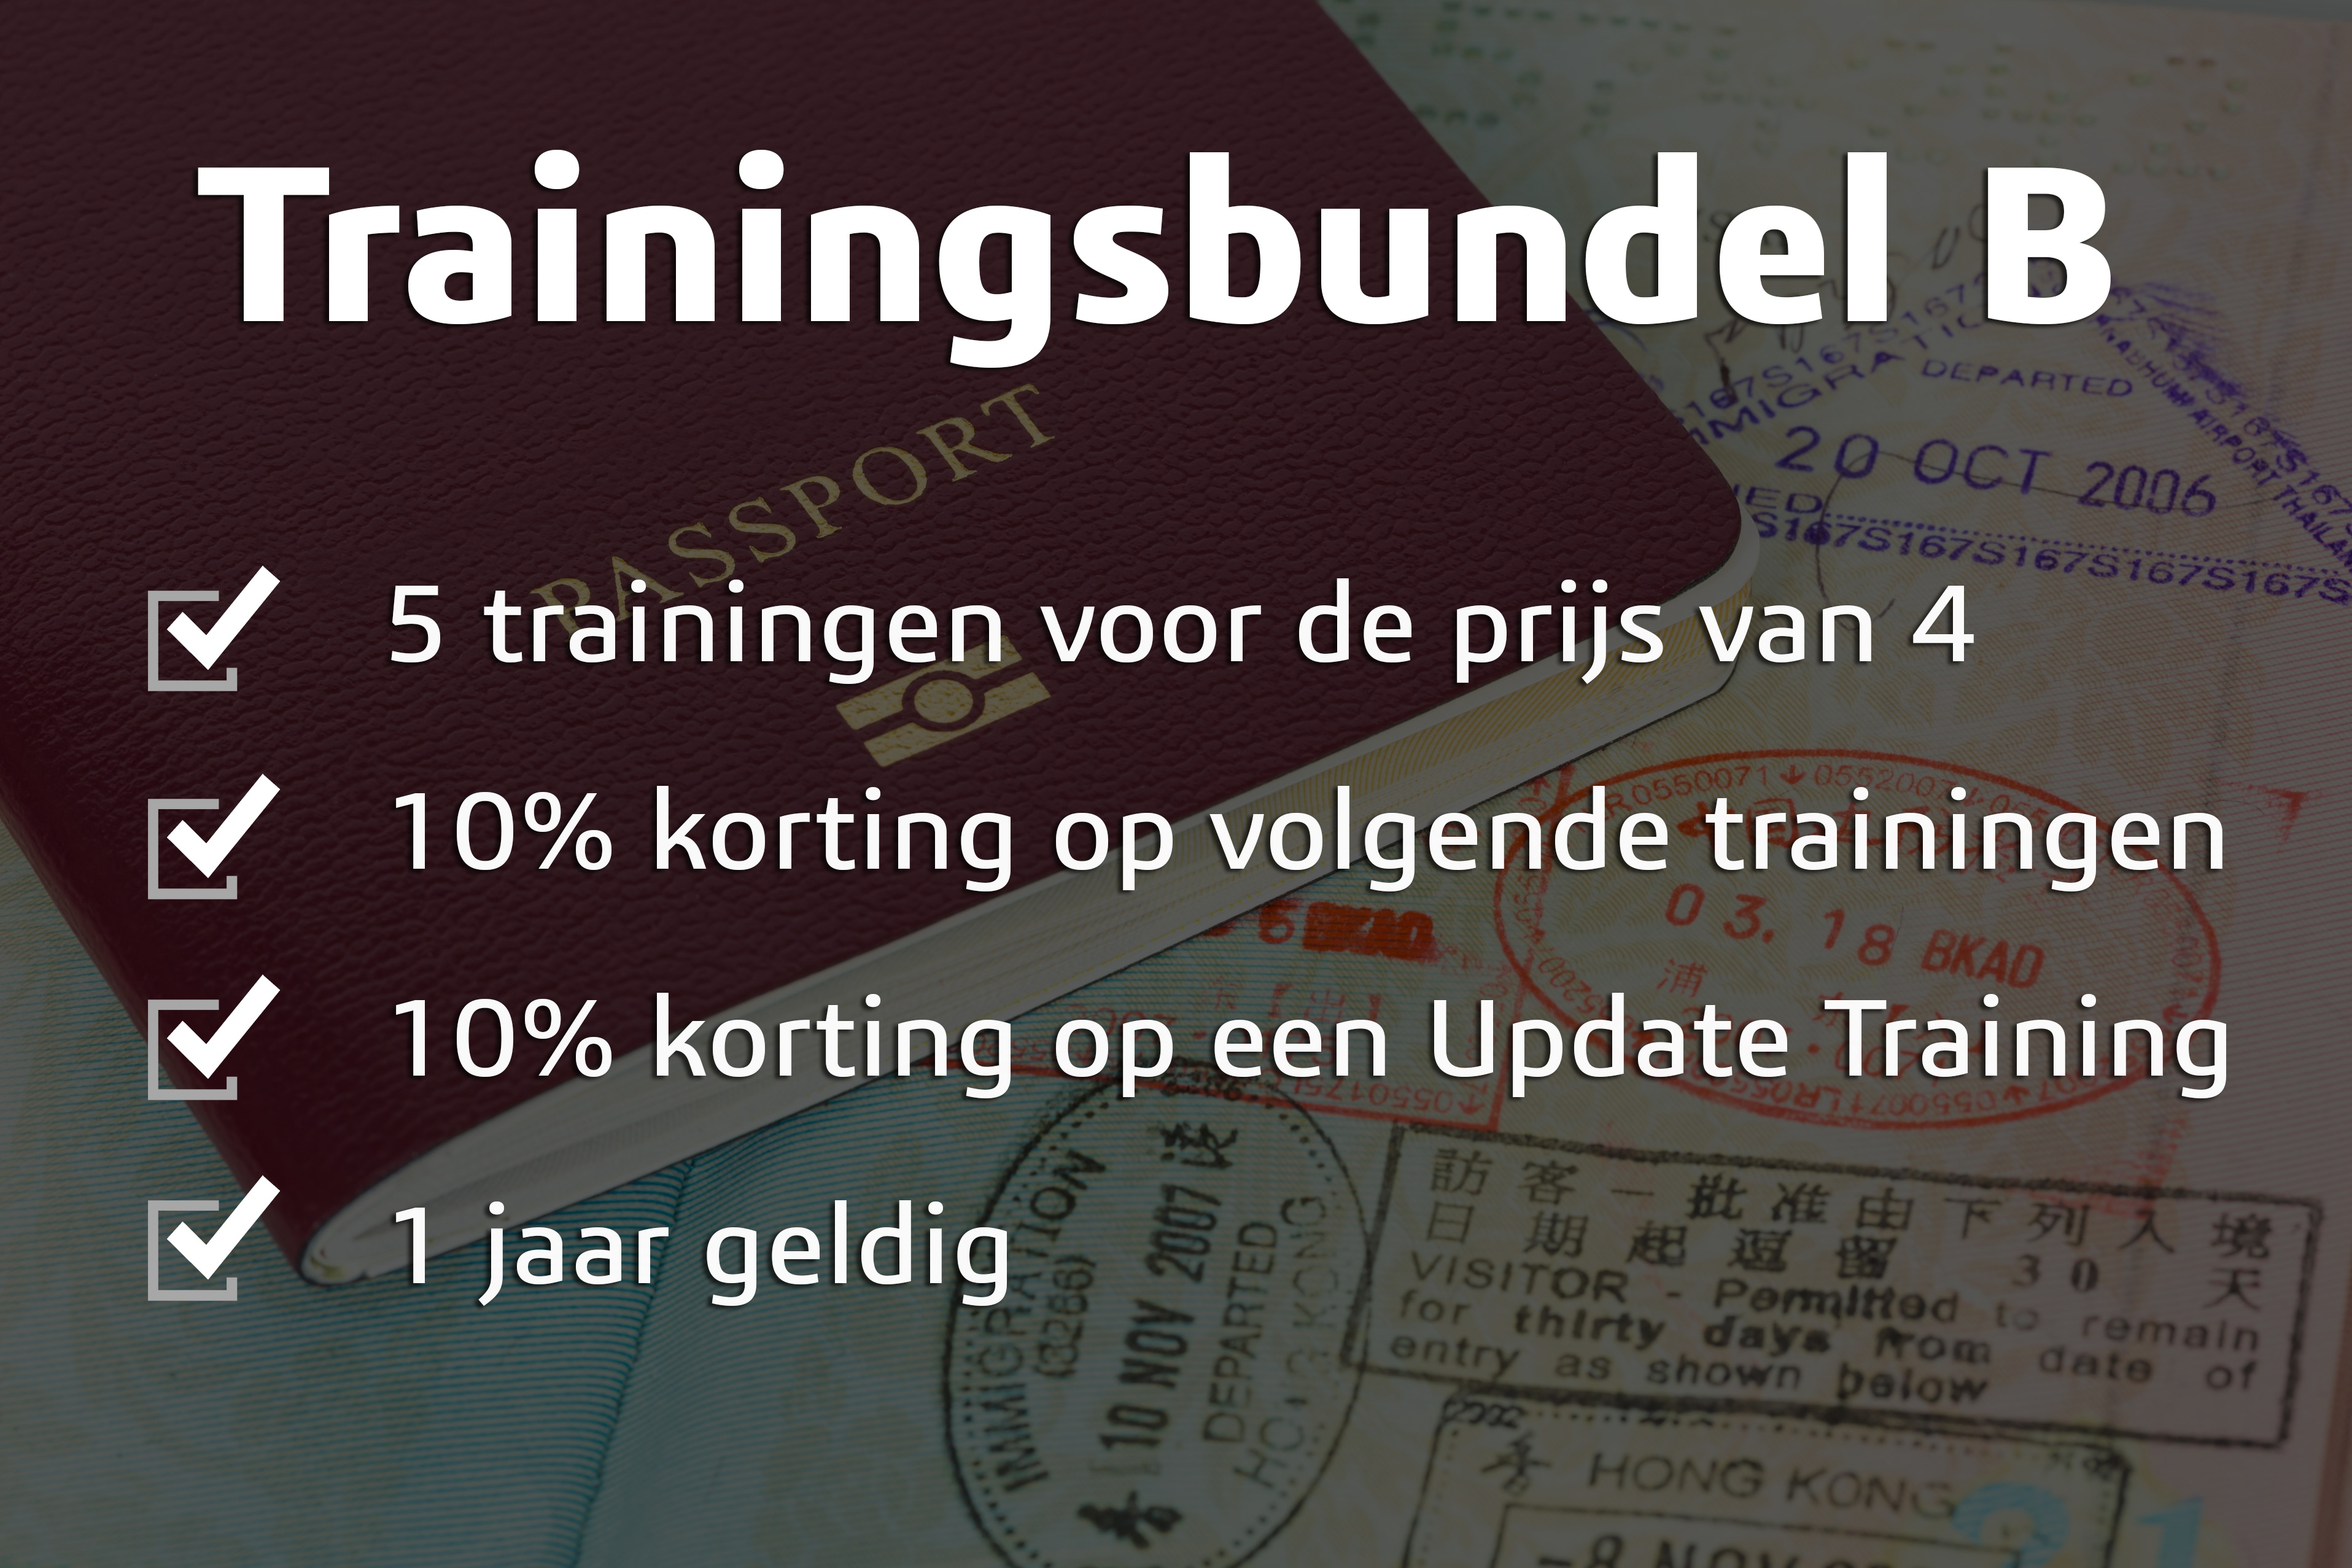 Trainingsbundel B V2.jpg